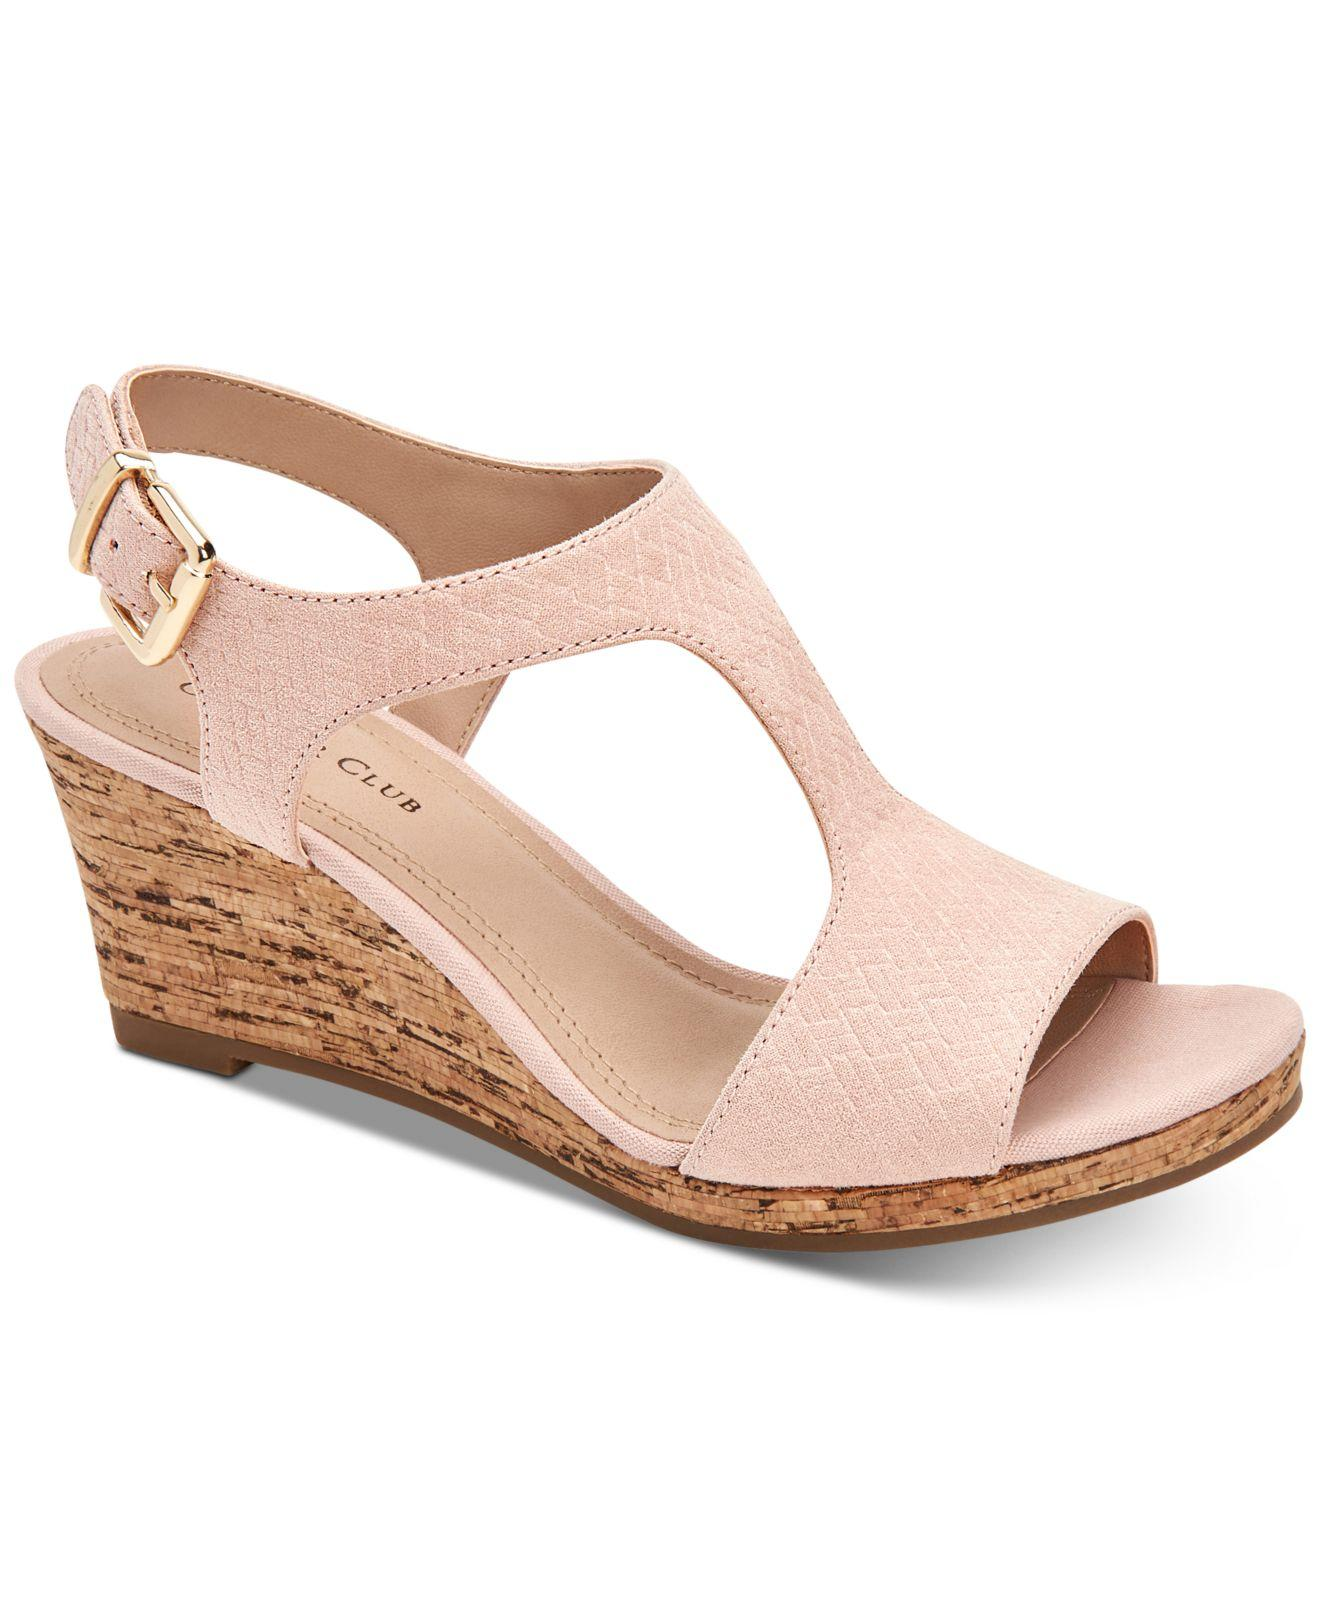 79aa53fb7e90 Lyst - Charter Club Shelbee T-strap Wedge Sandals